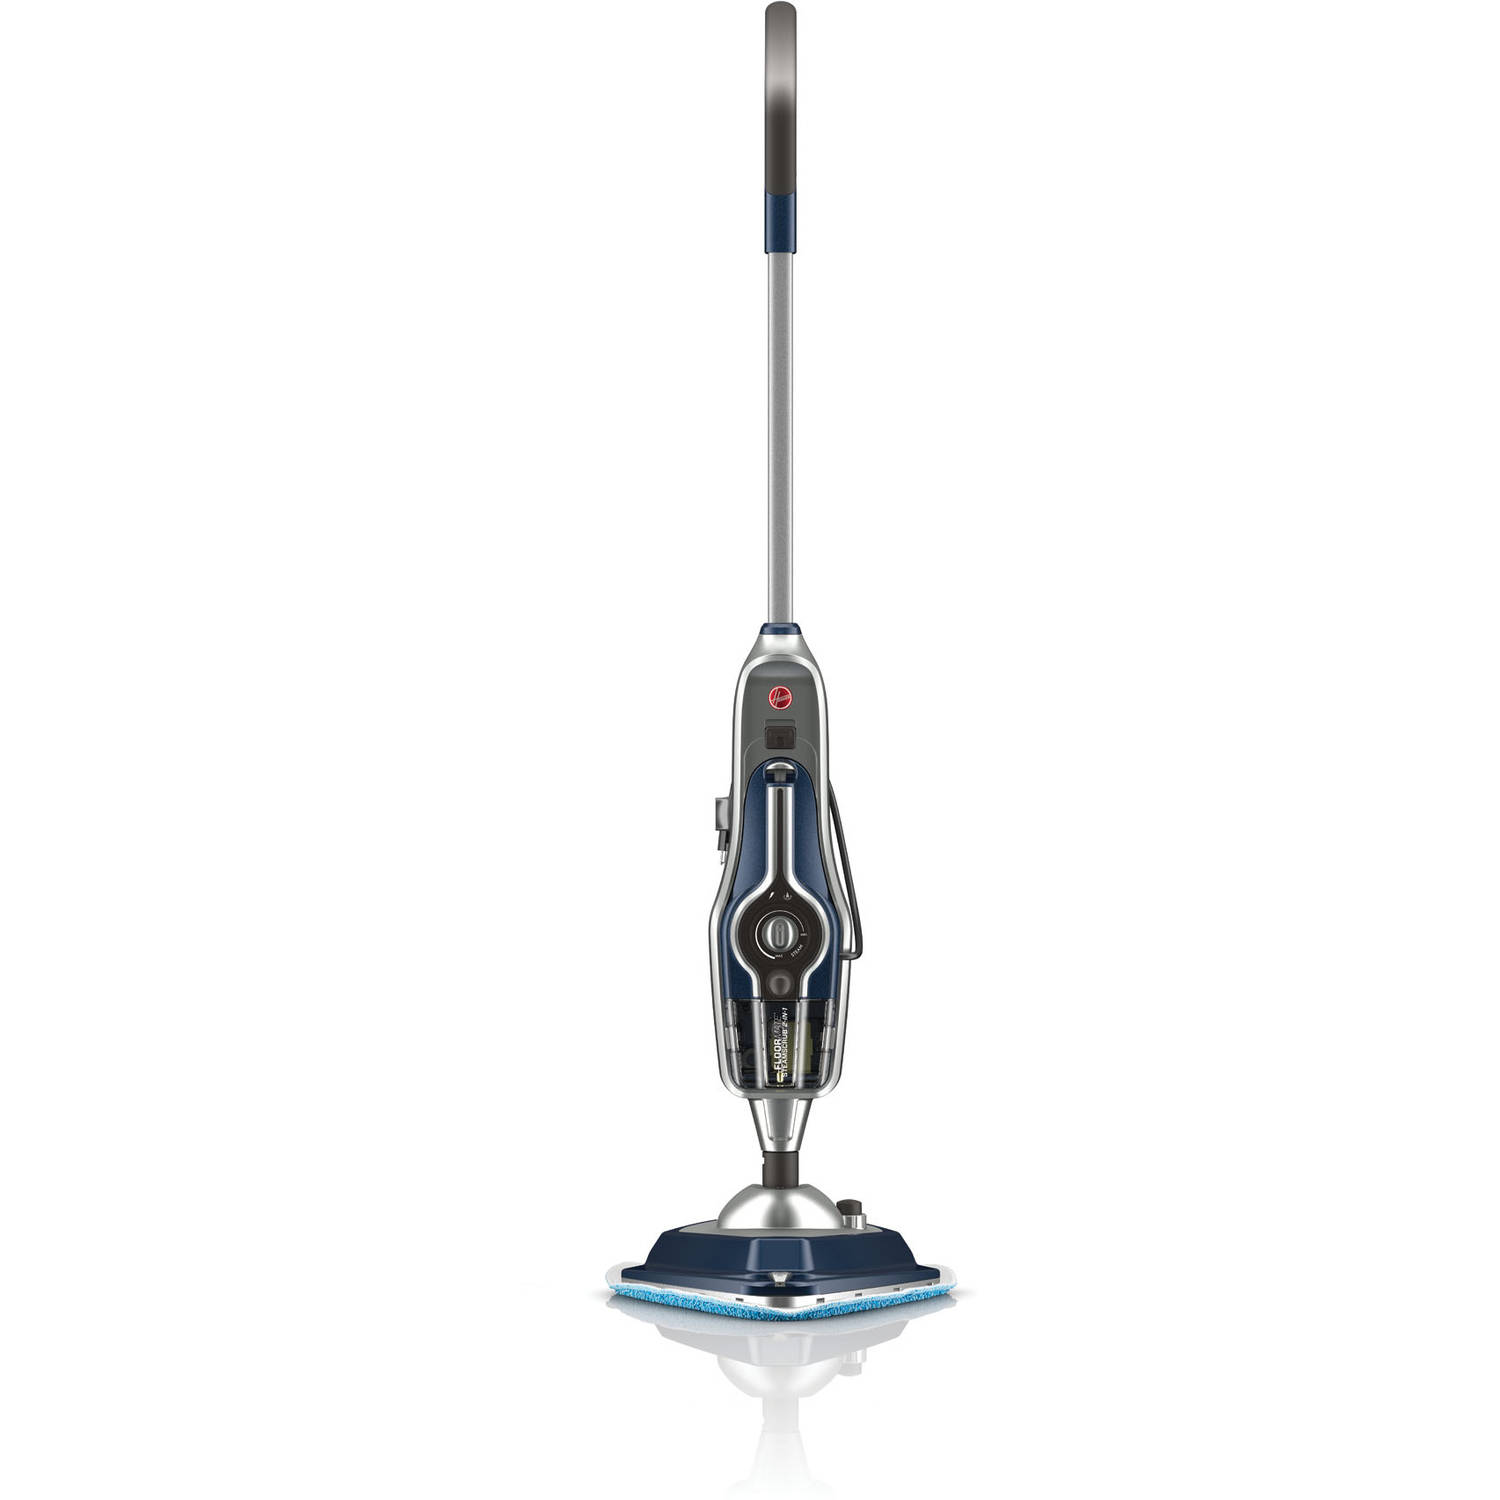 hard buffer brush floors shampooer cleaning floor hoover twin carpet cleaner scrubber